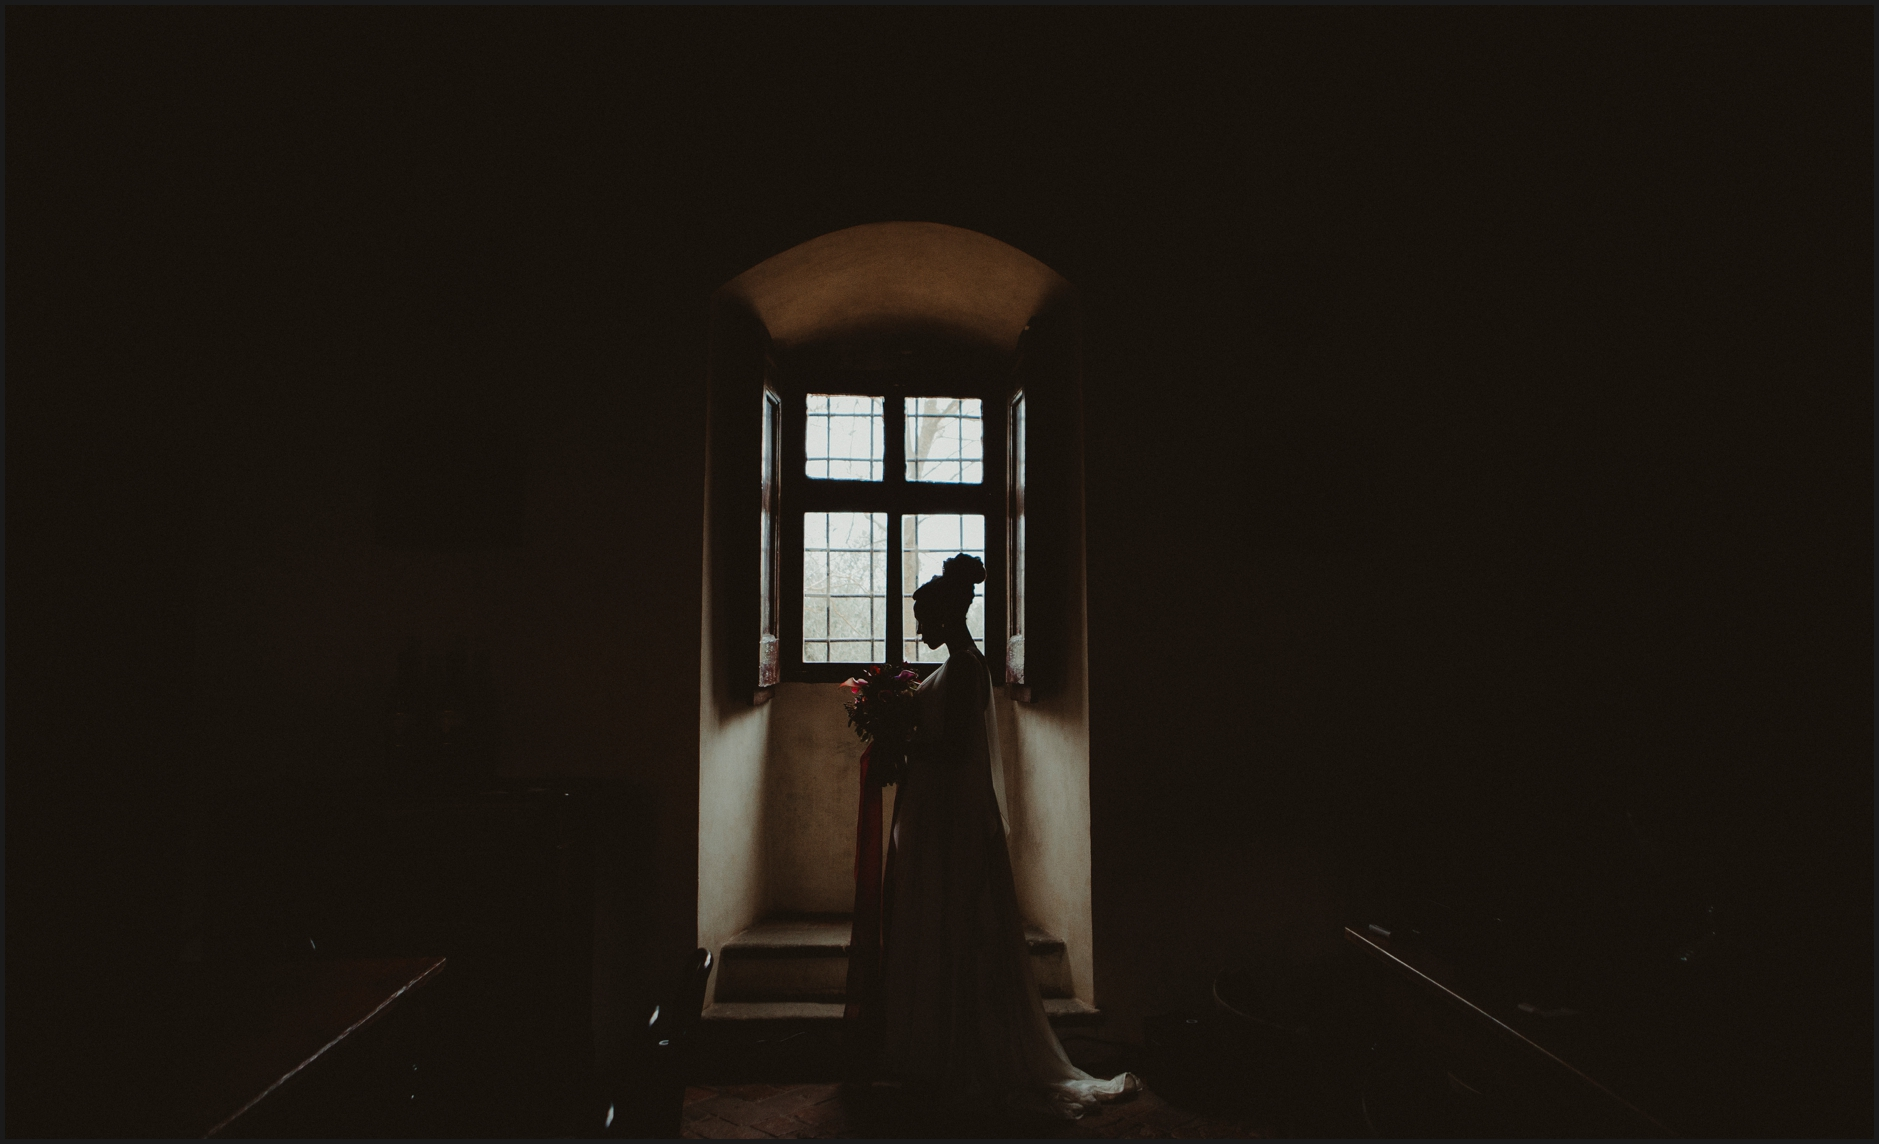 wedding, bride, groom, villa medicea di lilliano, portrait, indoor, villa's interior, tuscany